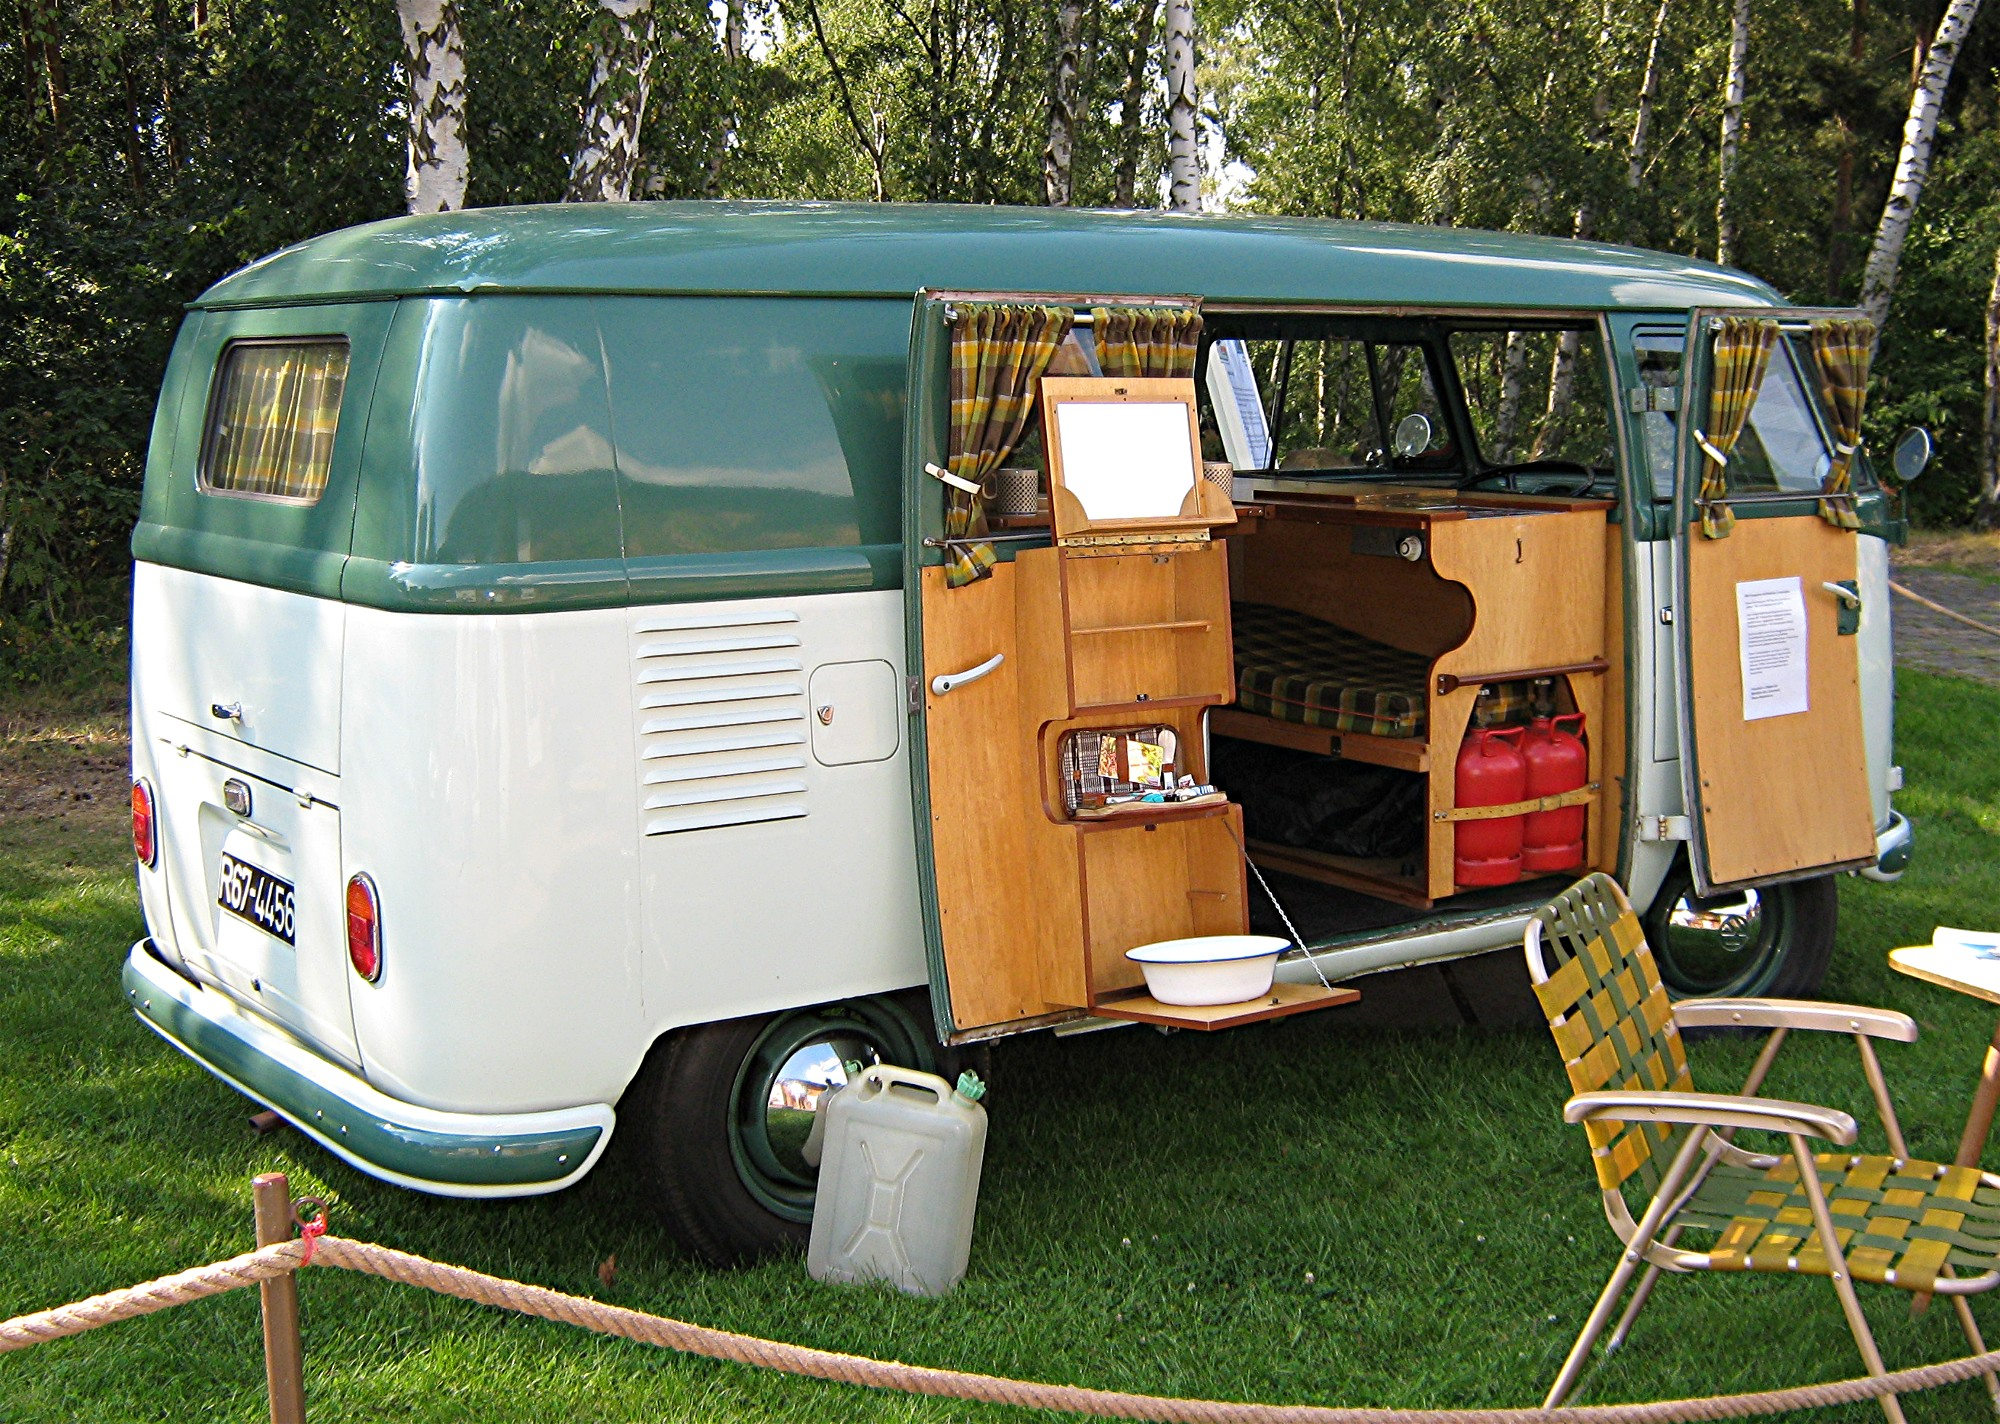 Motorhome Upkeep: What You Need to Know